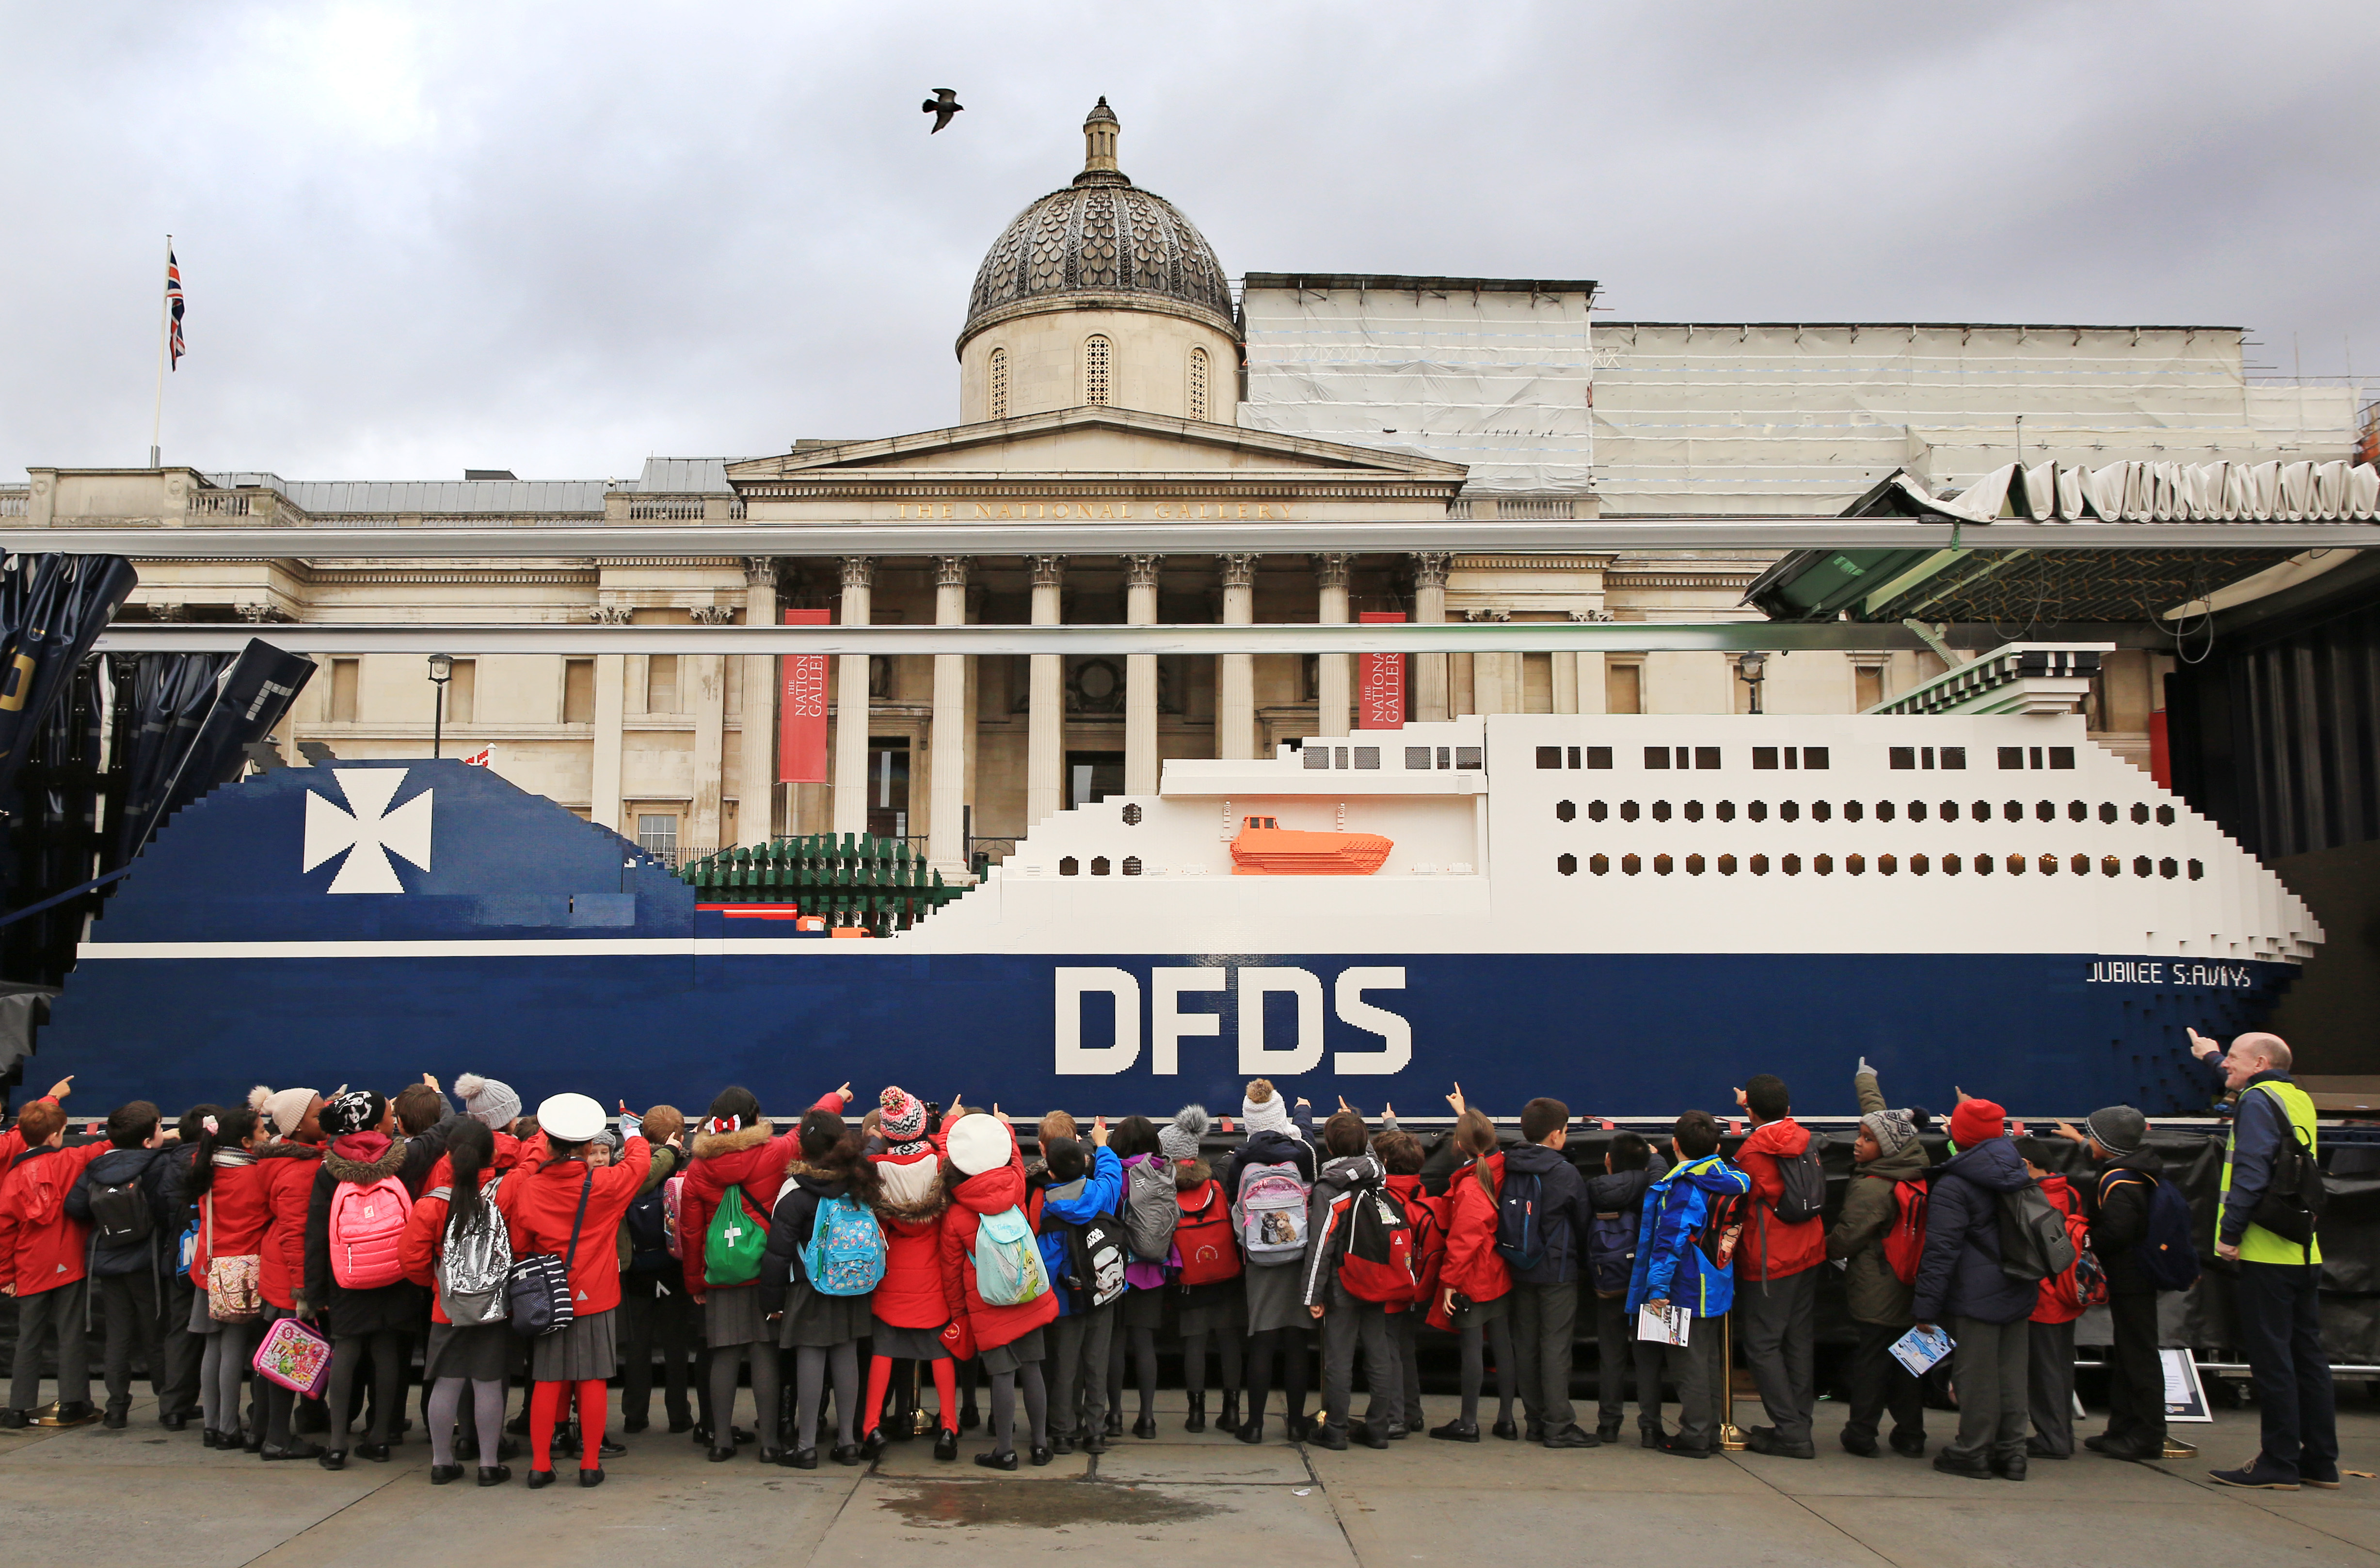 Image gallery | 150 Anniversary – DFDS Group